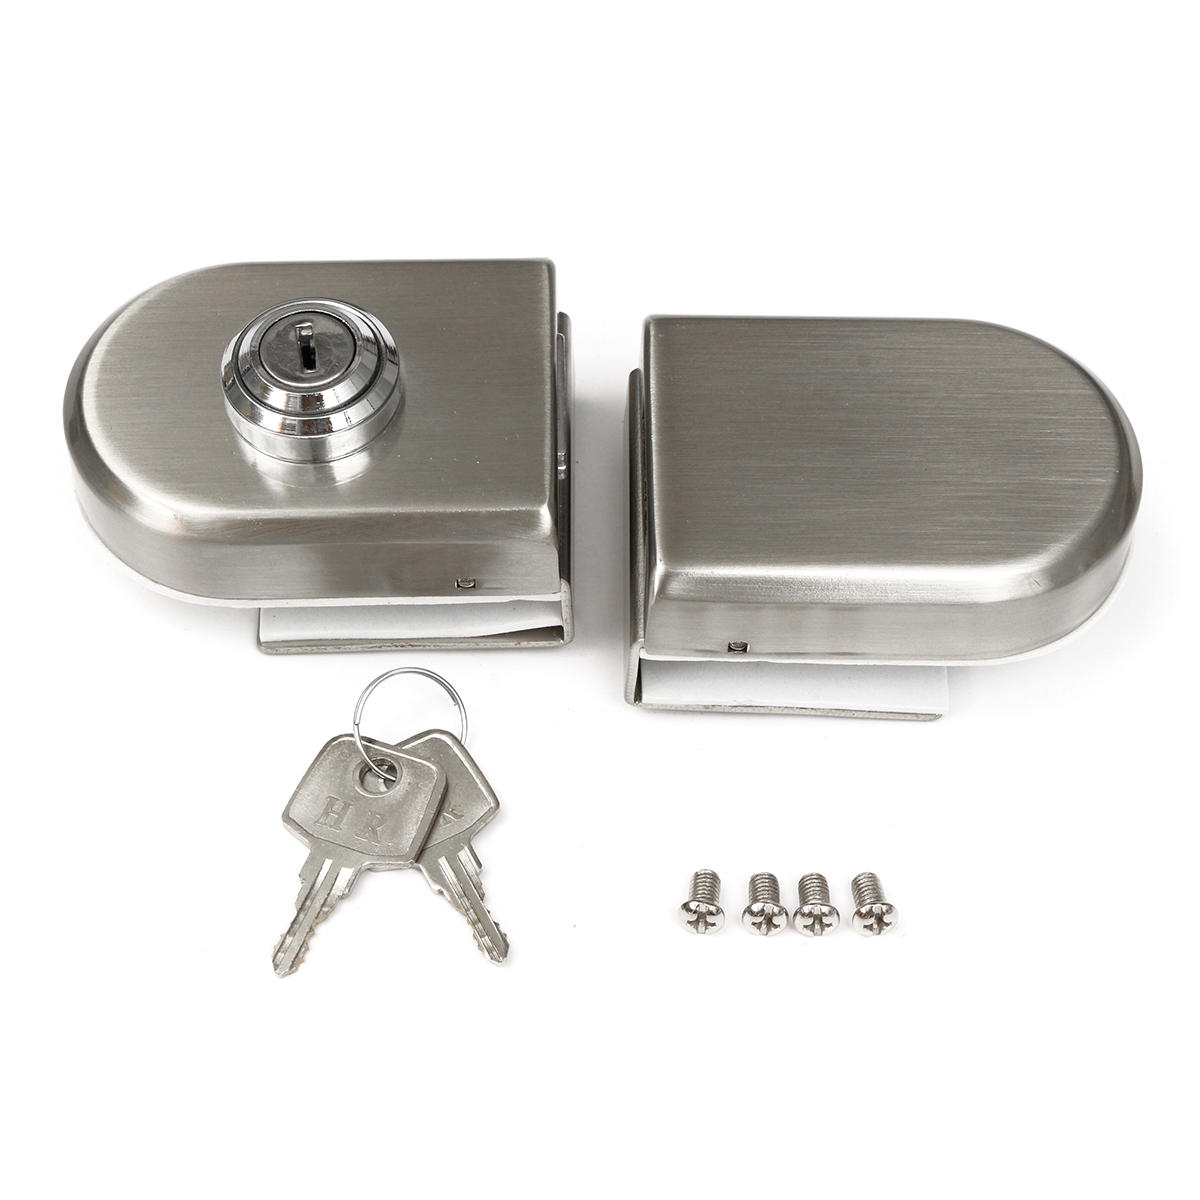 Stainless Steel 12mm Gl Door Lock Double Swing Hinged Frameless